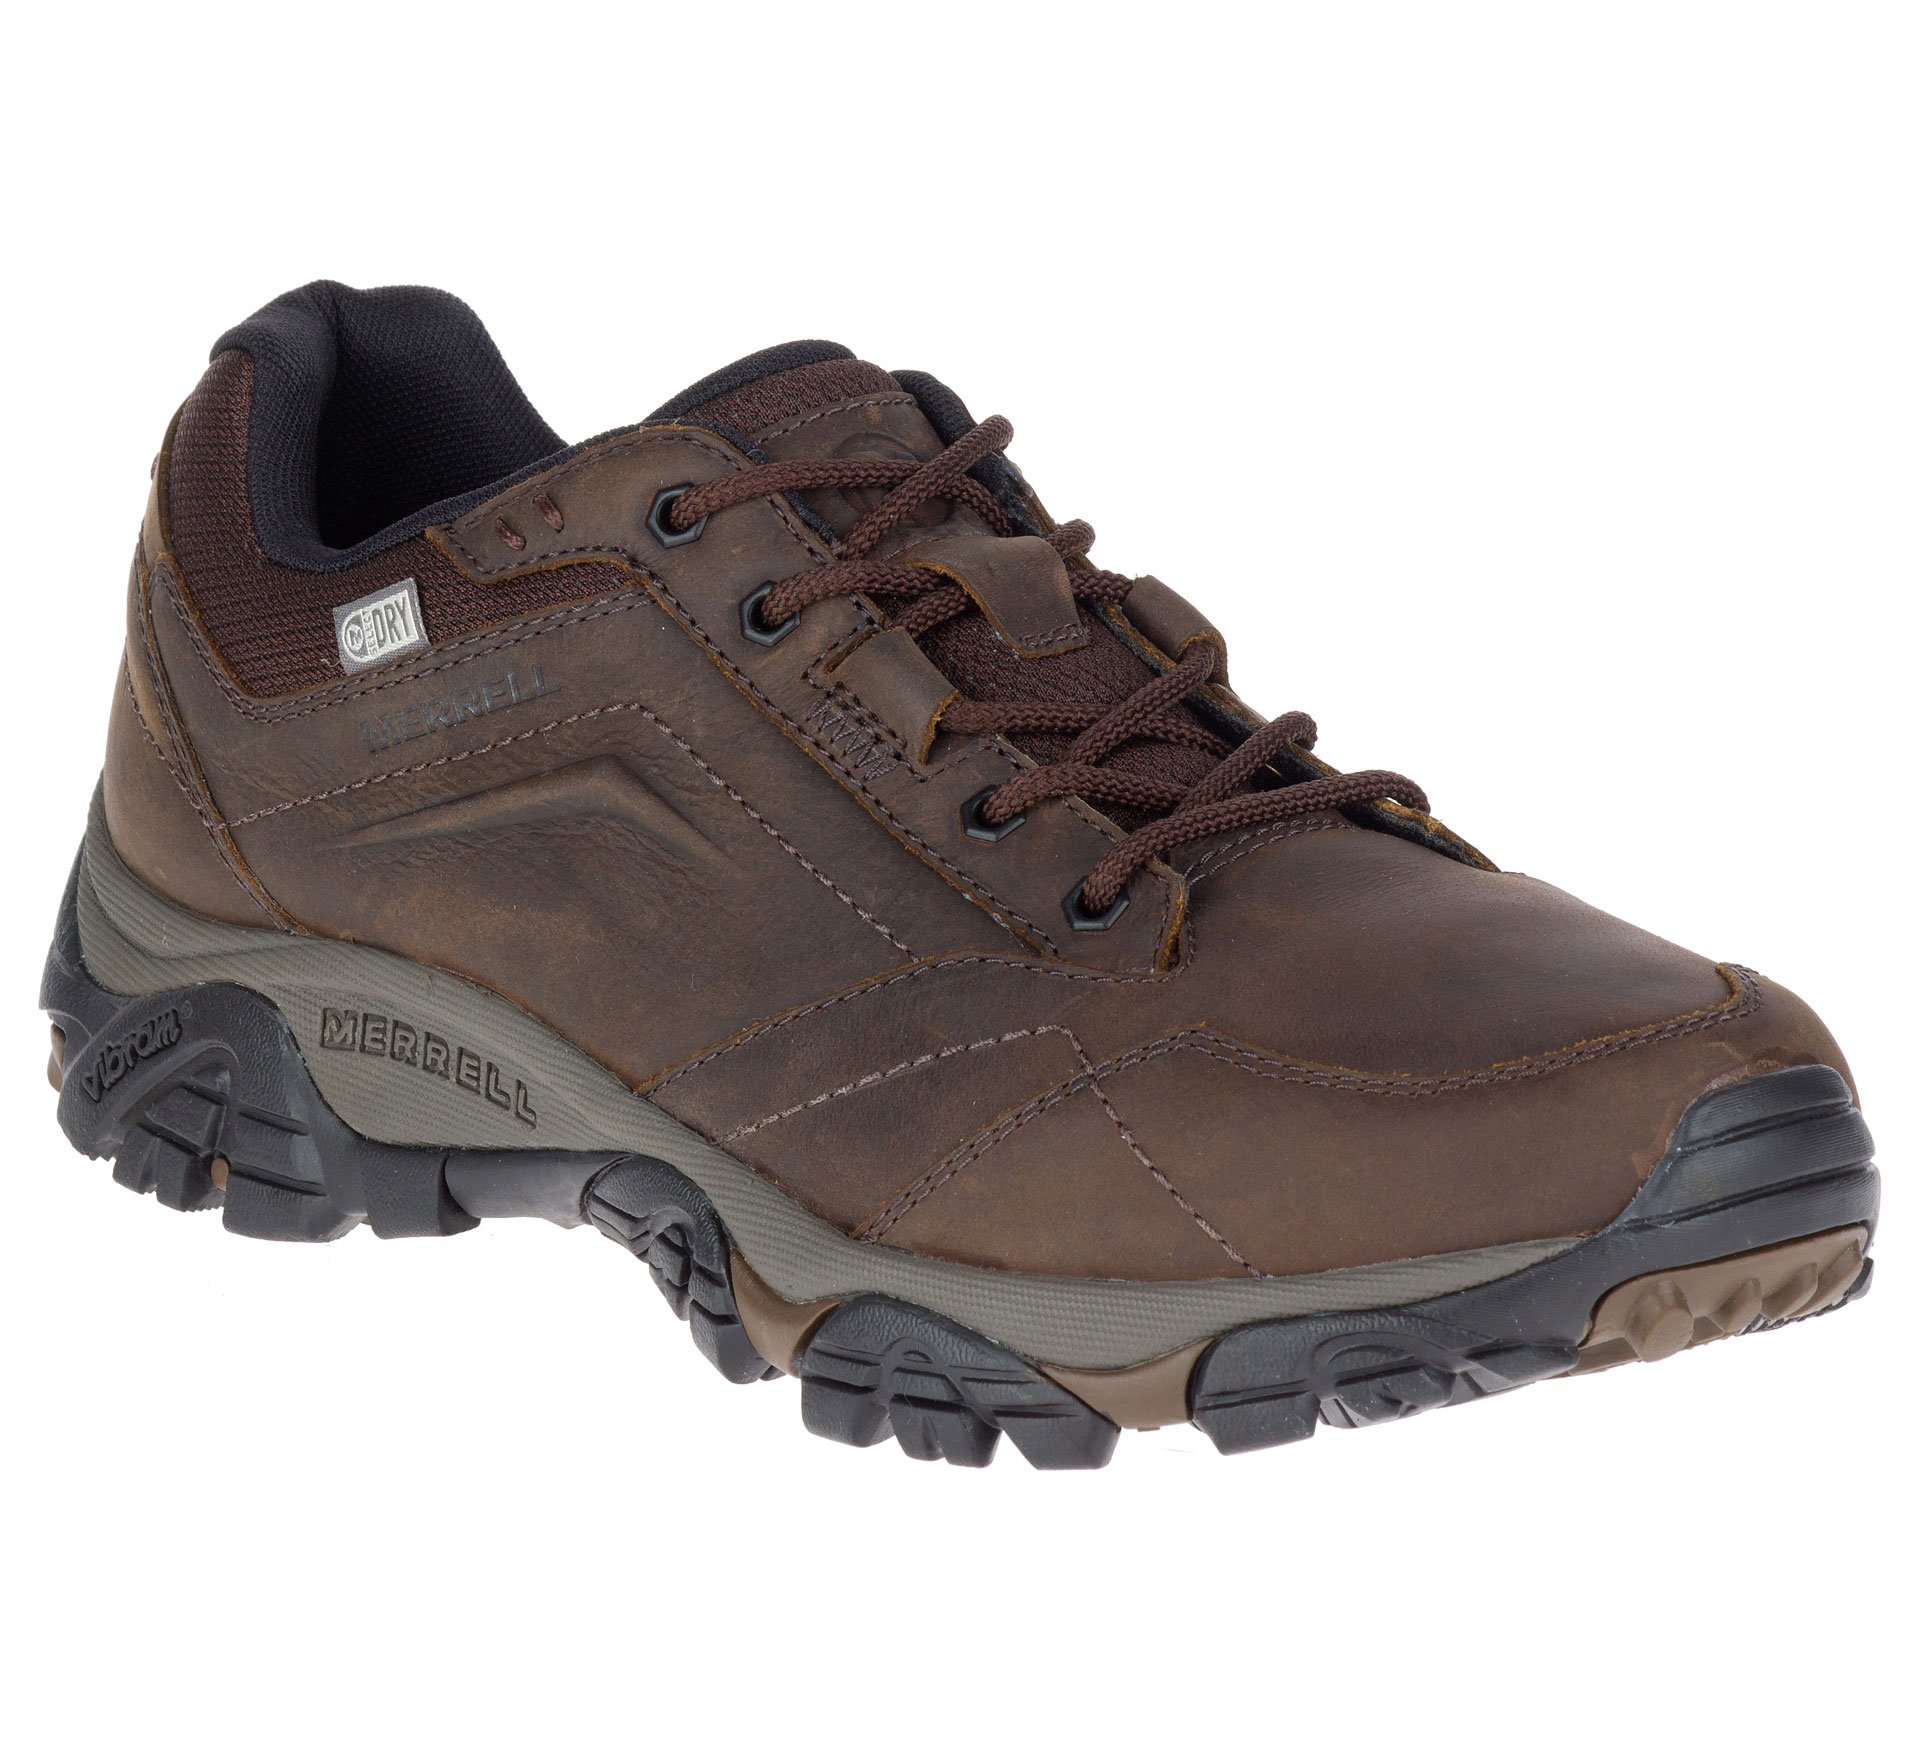 81qV2cQ3vhL - Merrell Men Moab Adventure Lace Waterproof Hiking Shoes